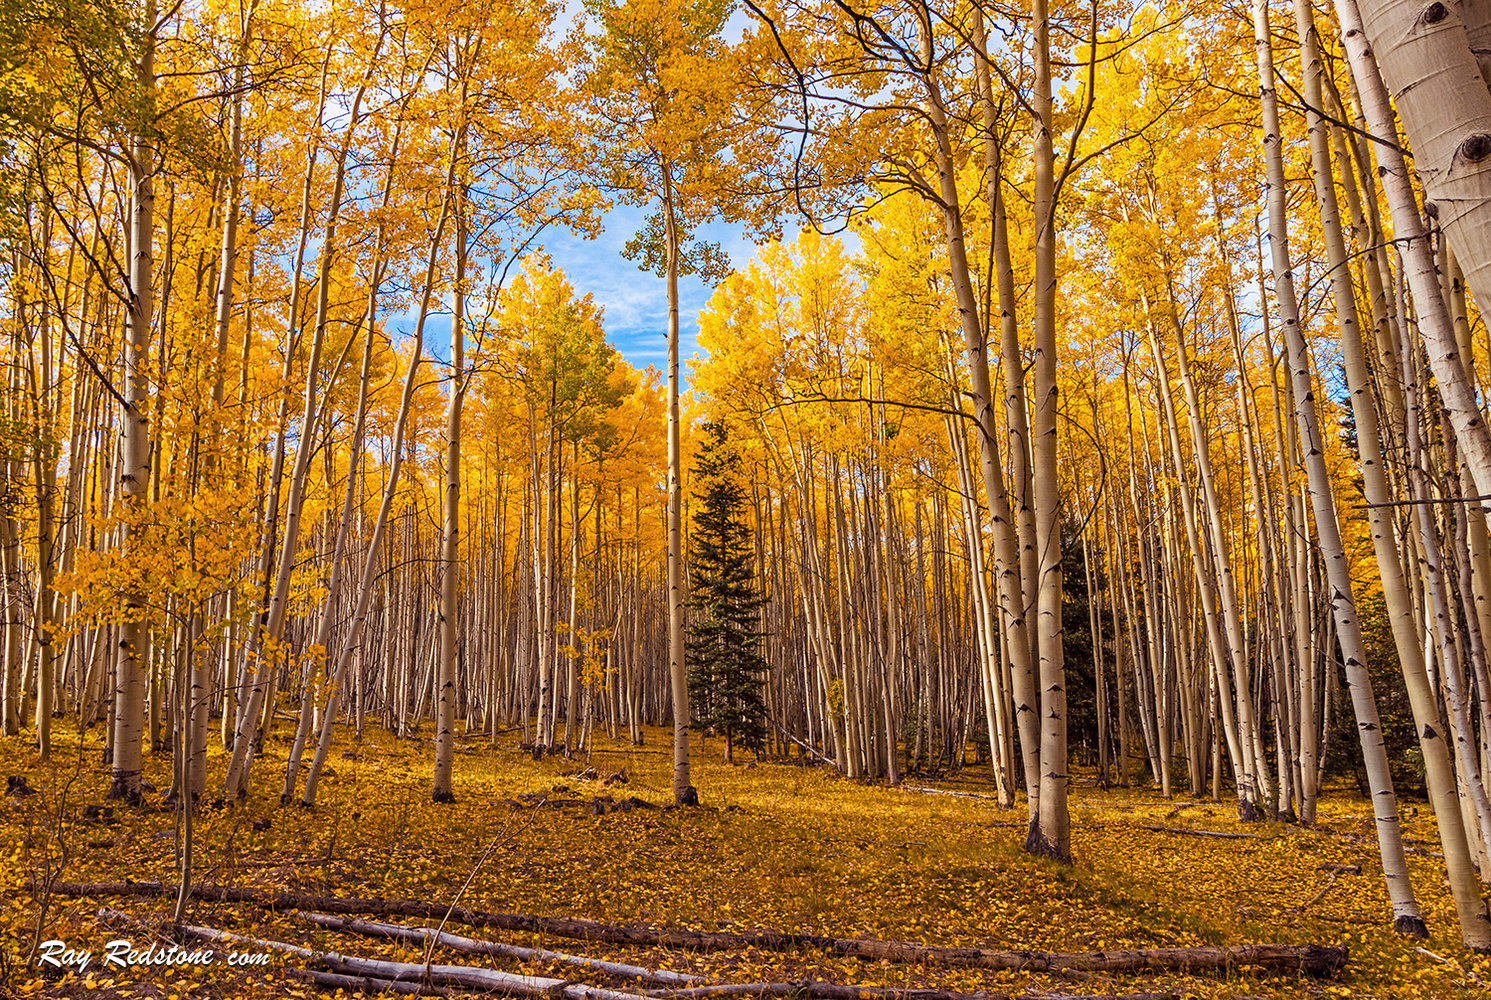 Aspen Forest at Fall Time In Colorado by Ray Redstone